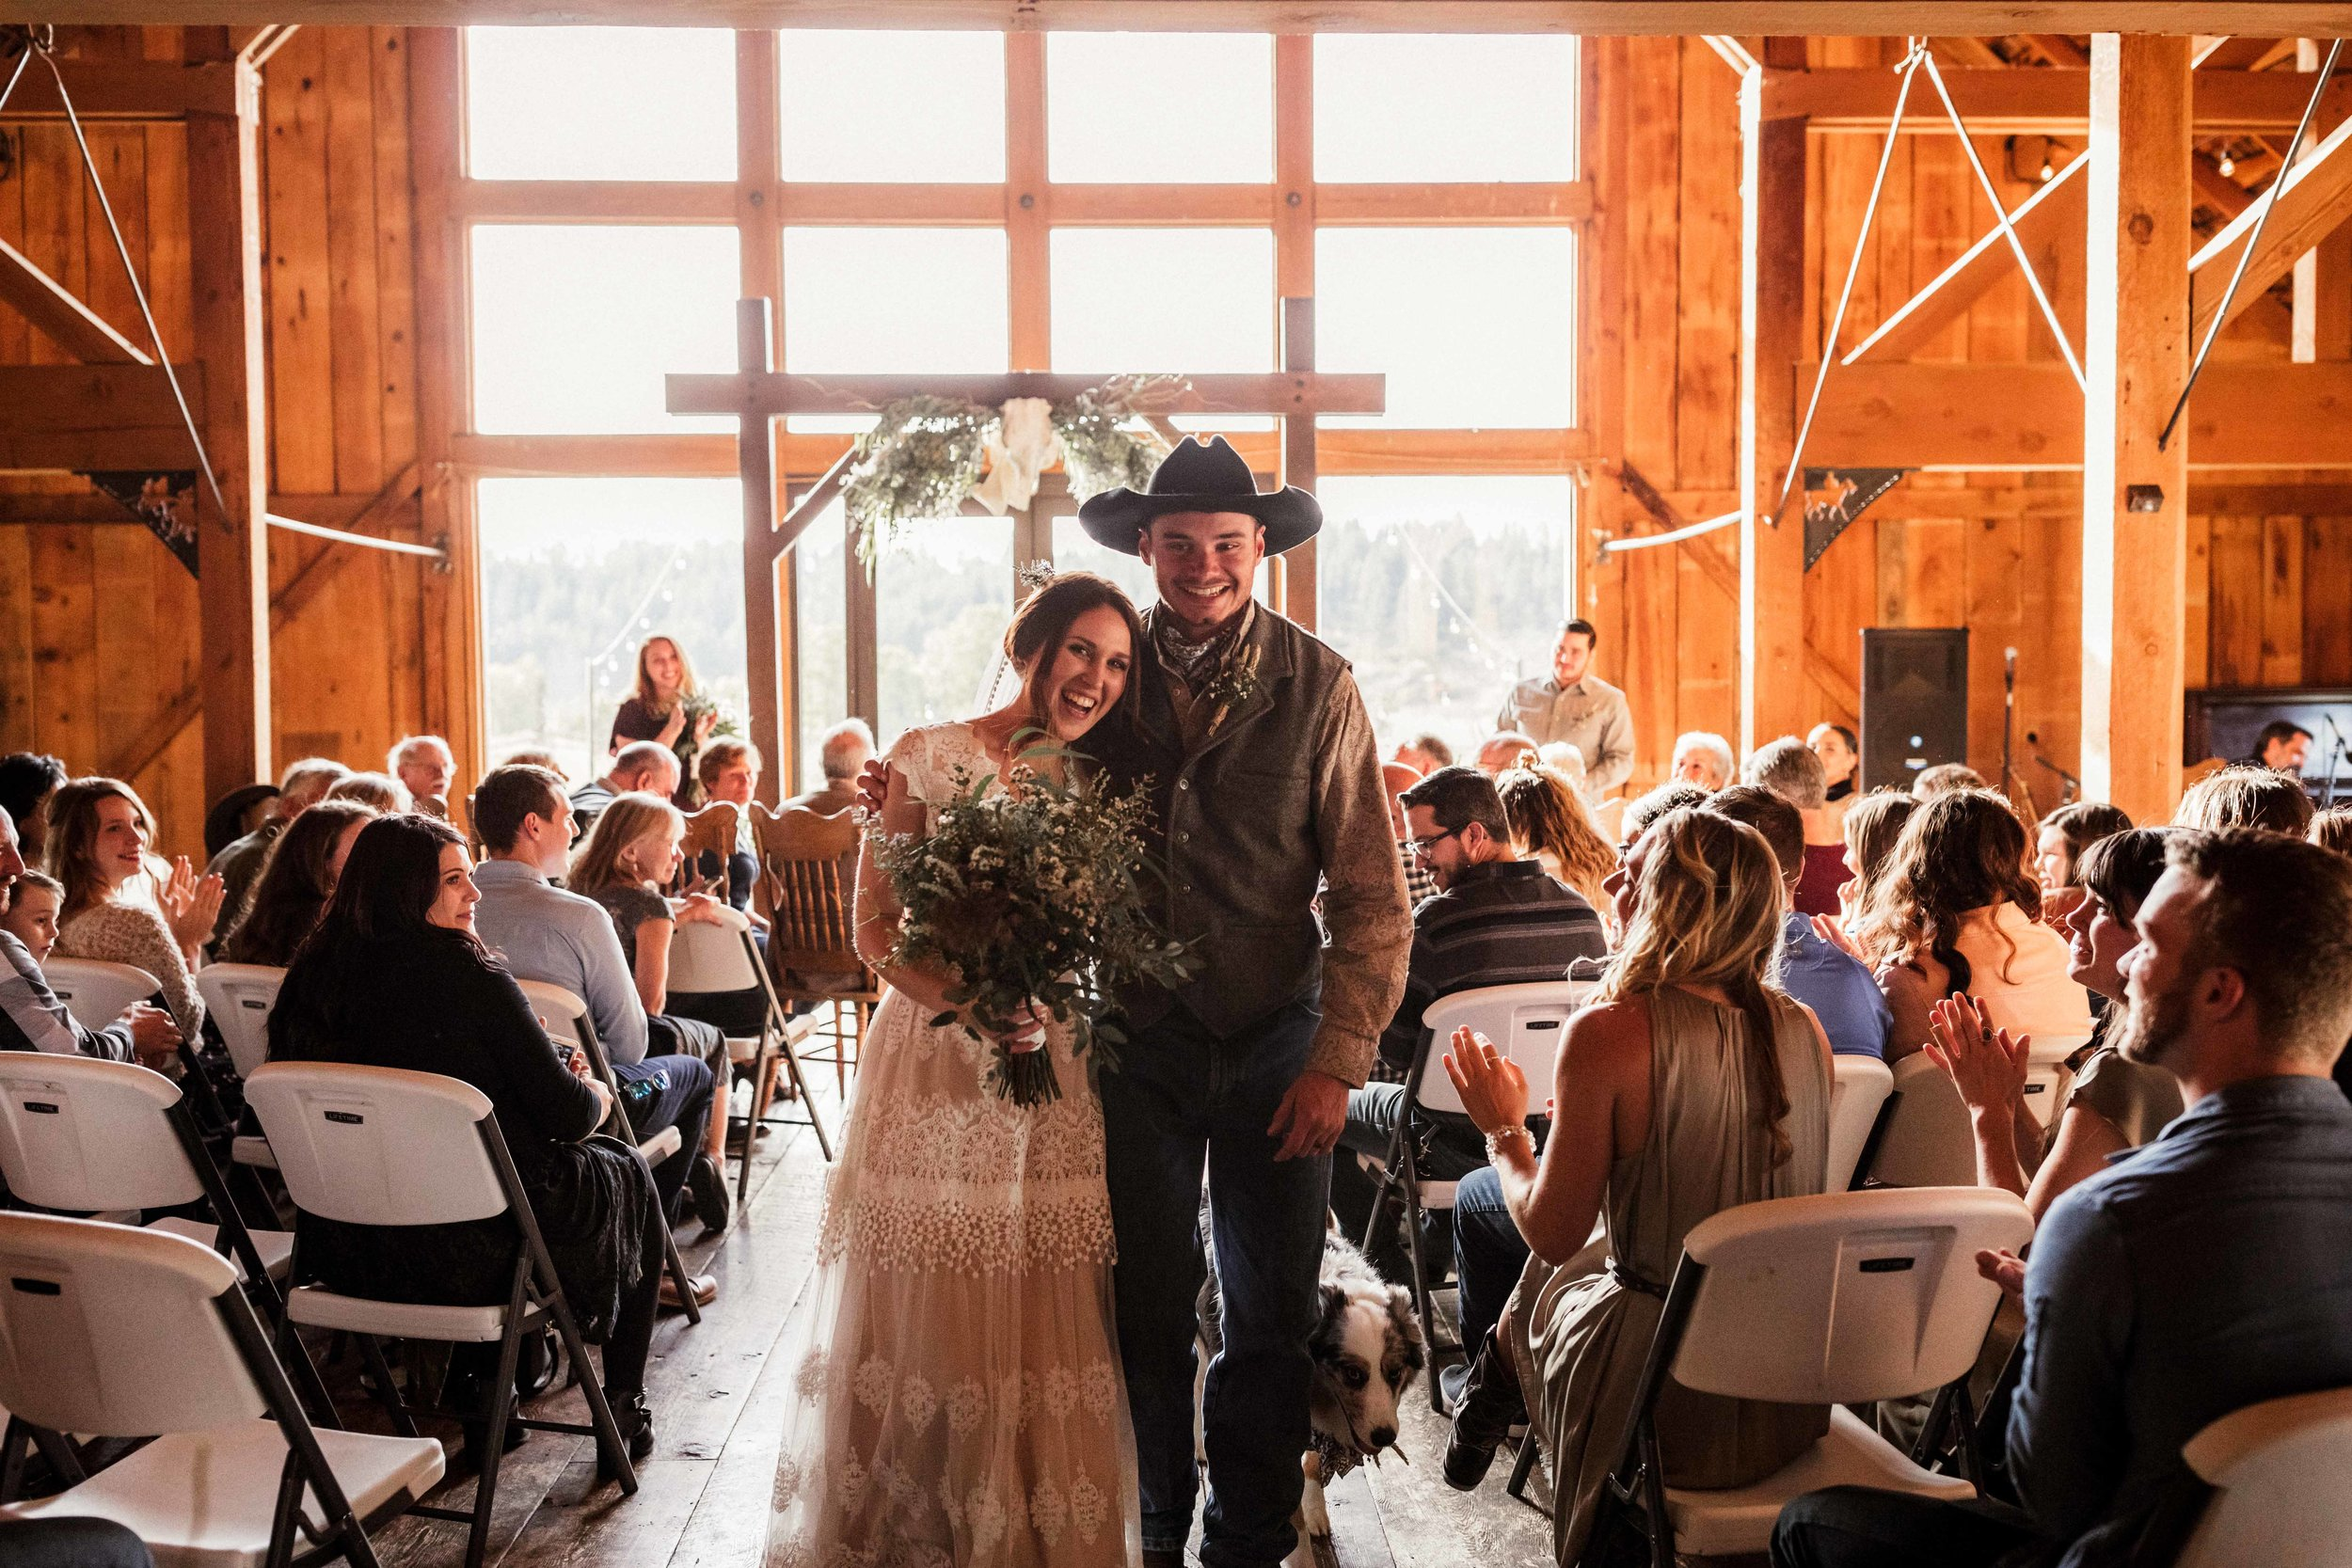 the-cattle-barn-wedding-45.jpg